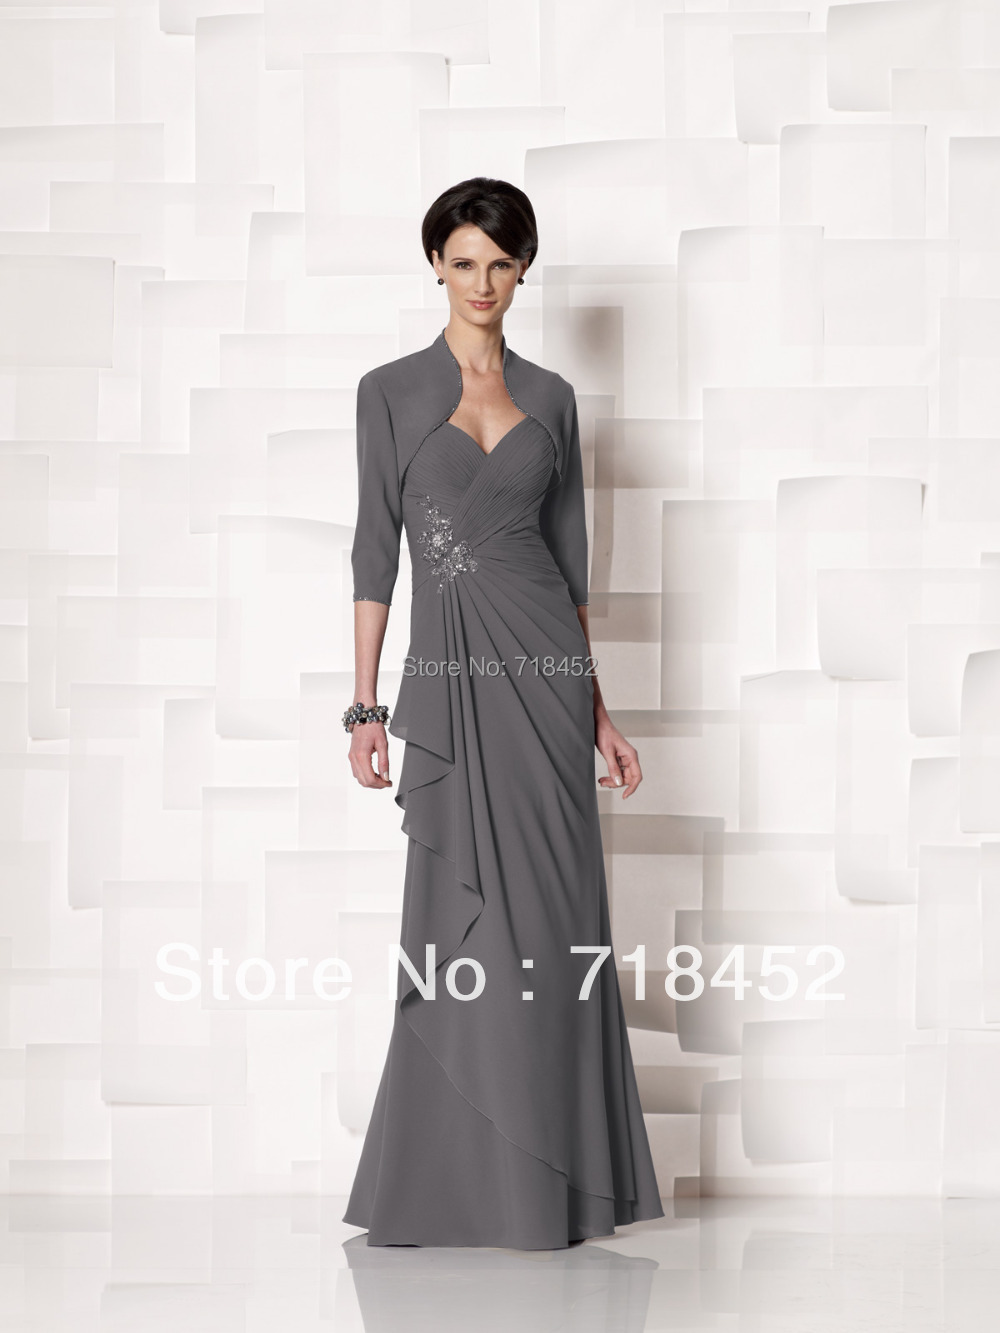 Grey Chiffon Mother Of The Bride Pant Suit Dress Luxury